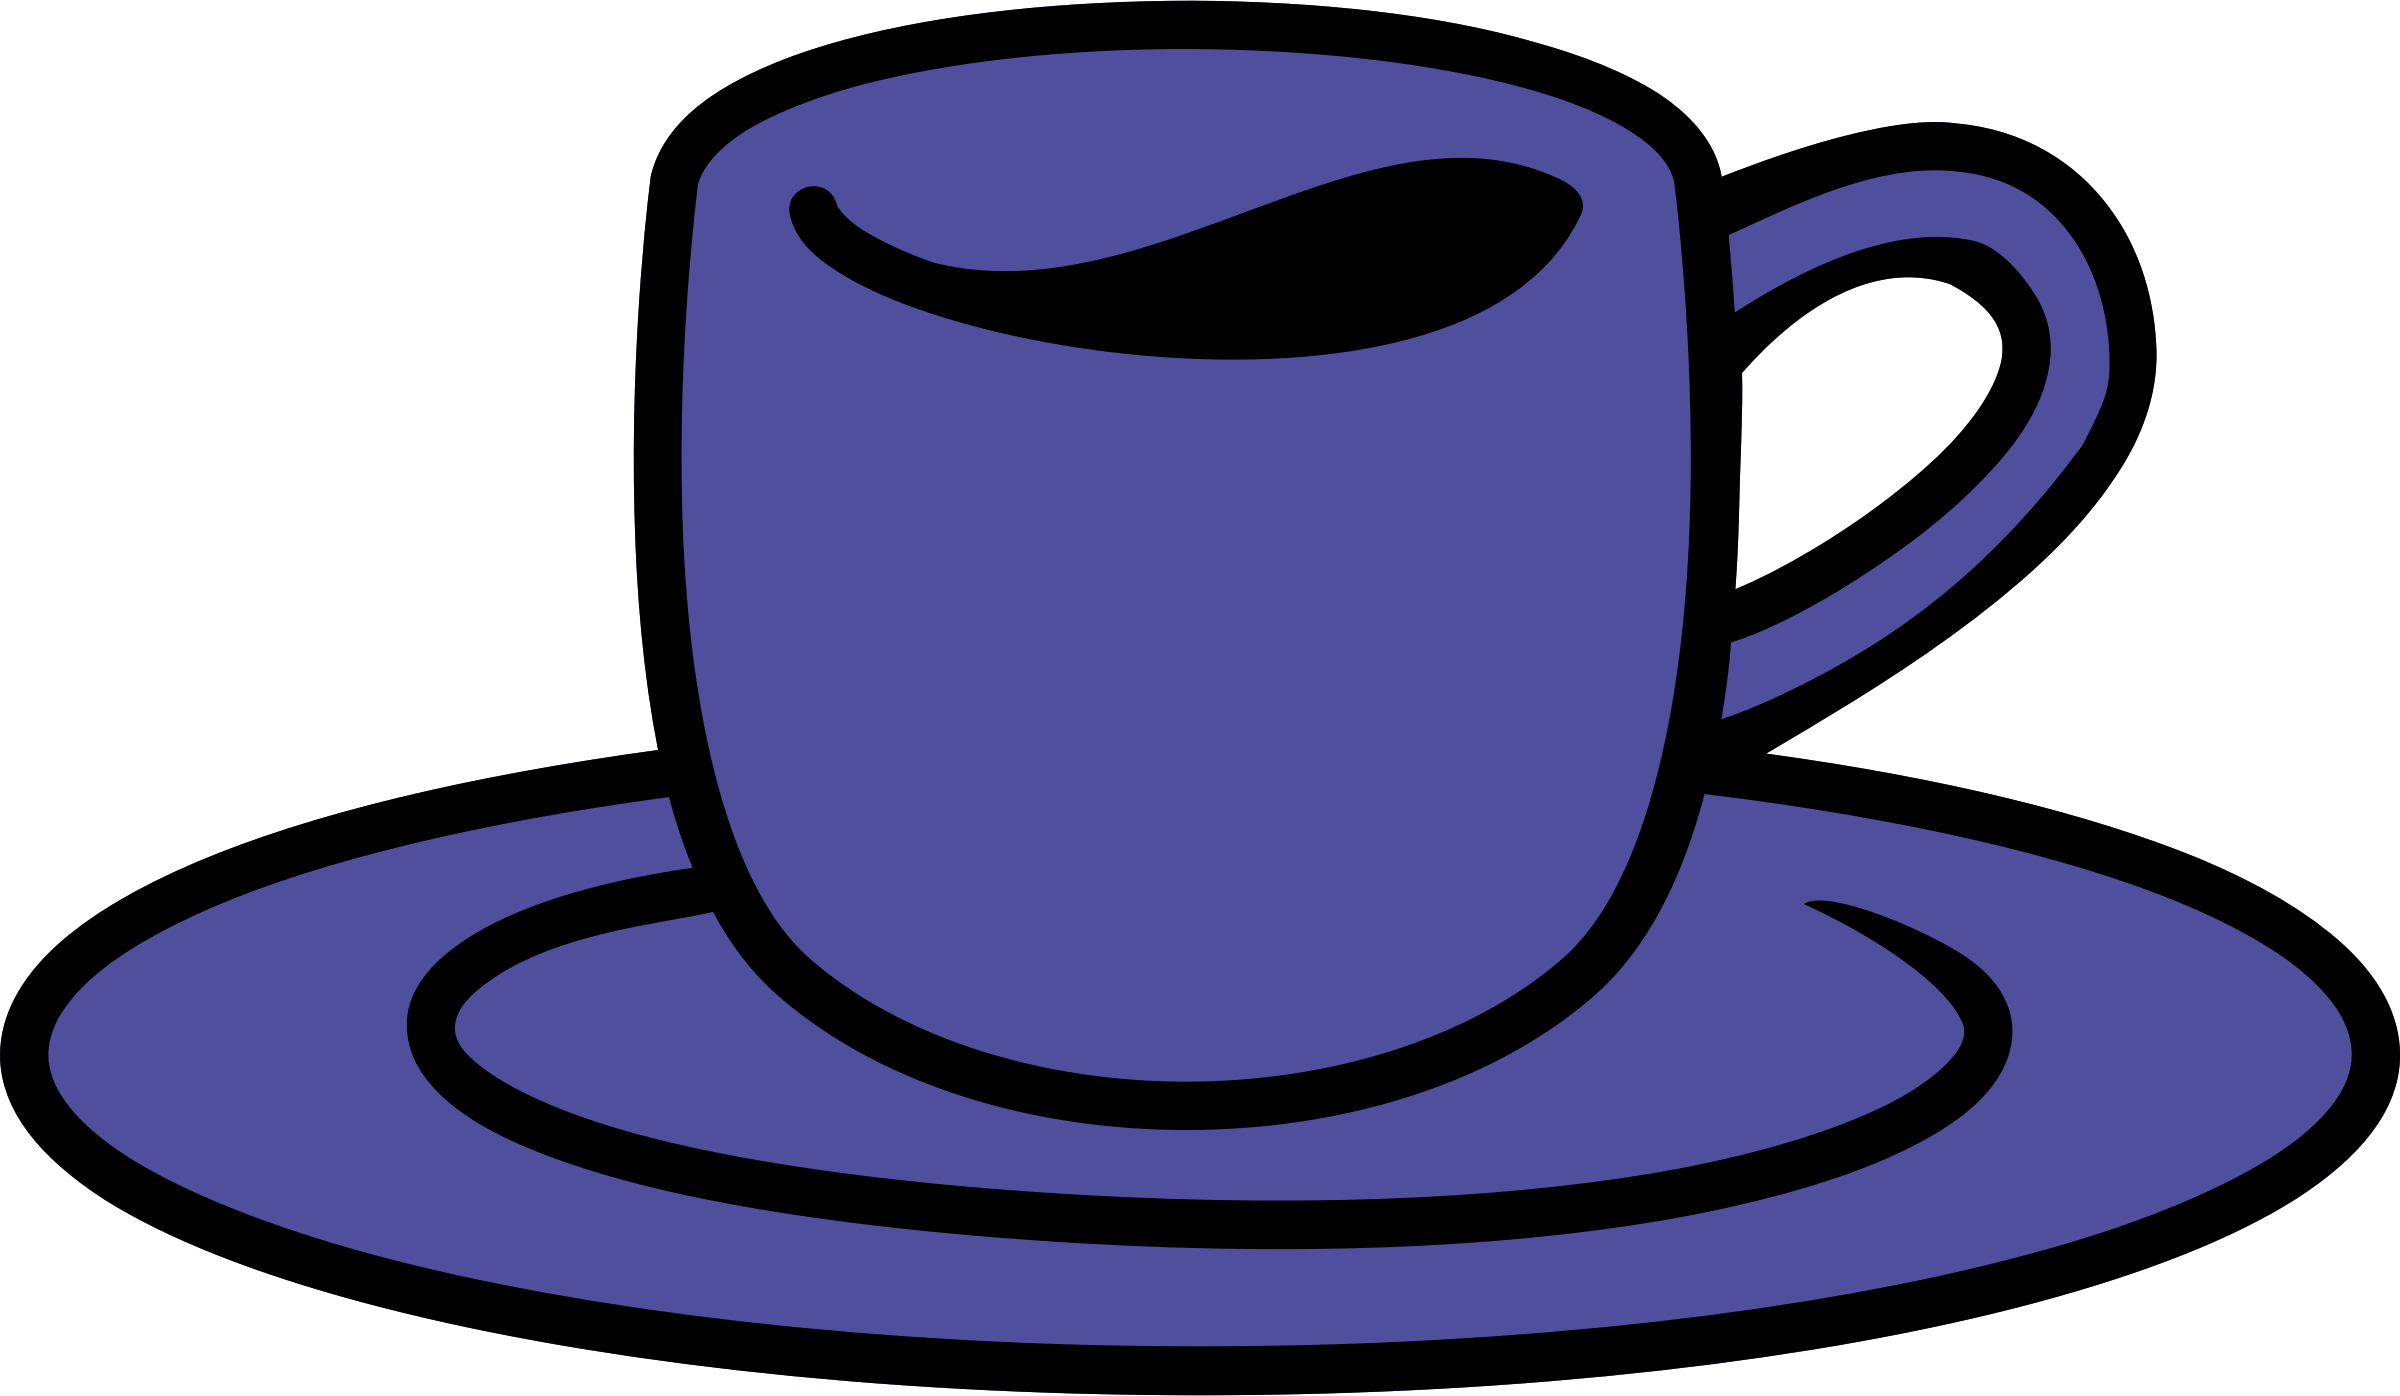 Cup big image png. Clipart coffee blue